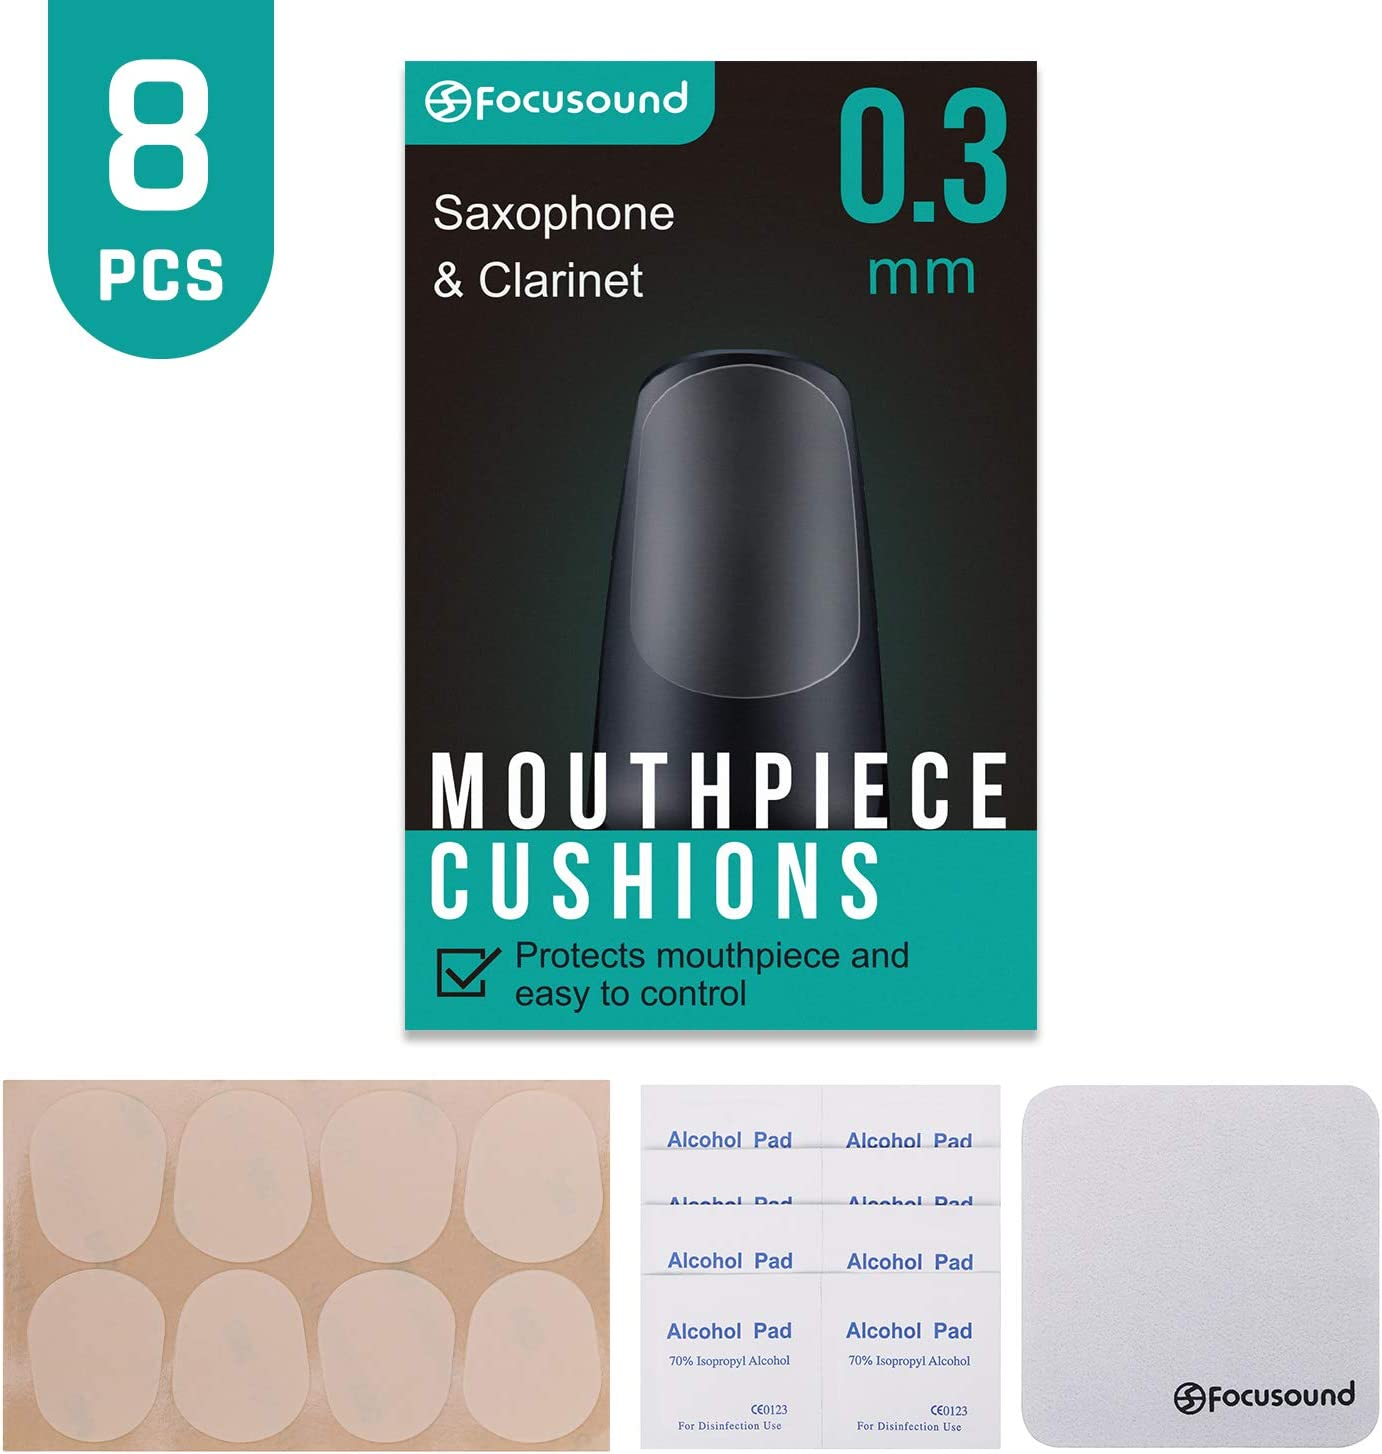 BG CLARINET /& SAXOPHONE MOUTHPIECE CUSHIONS CLEAR LARGE 0.4 mm thick A11L